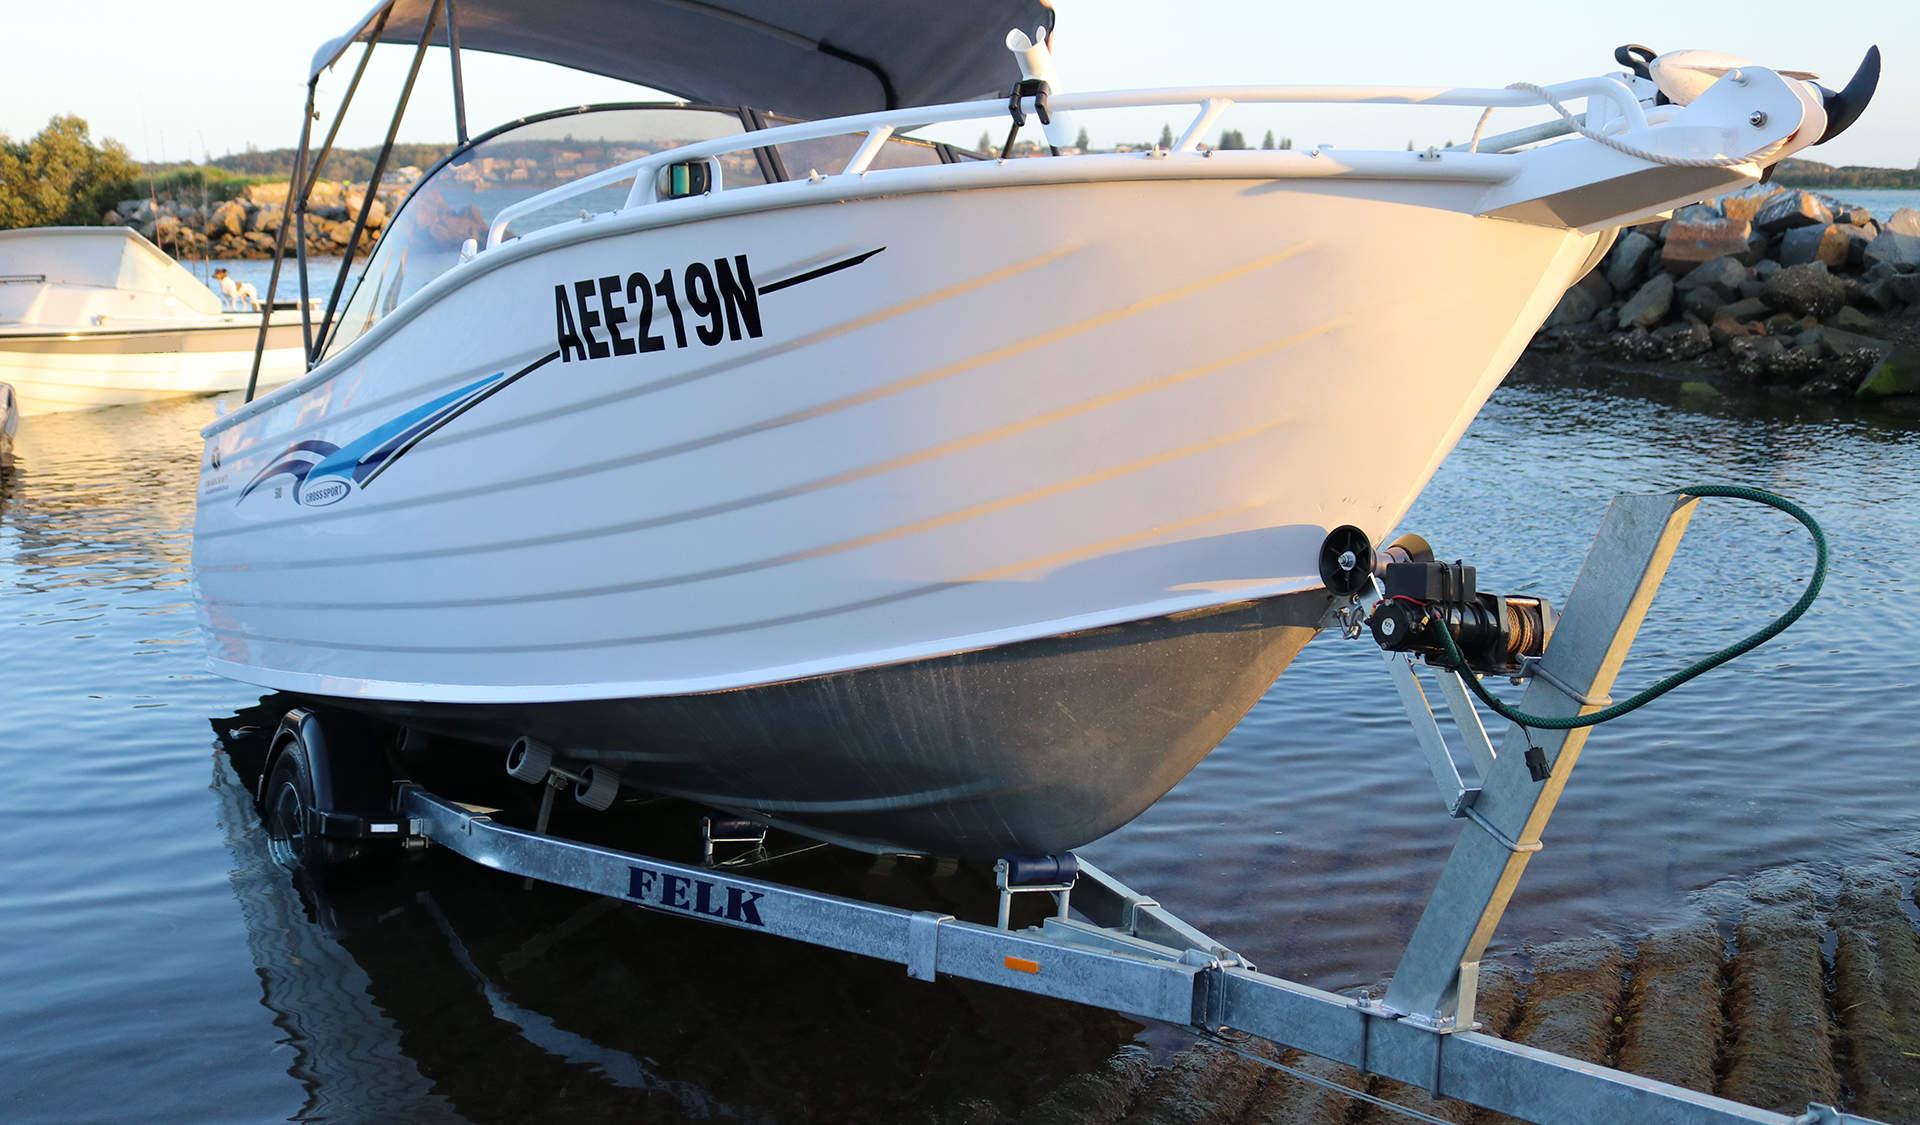 speed boat lowered into Lake Macquarie water using a felk trailer